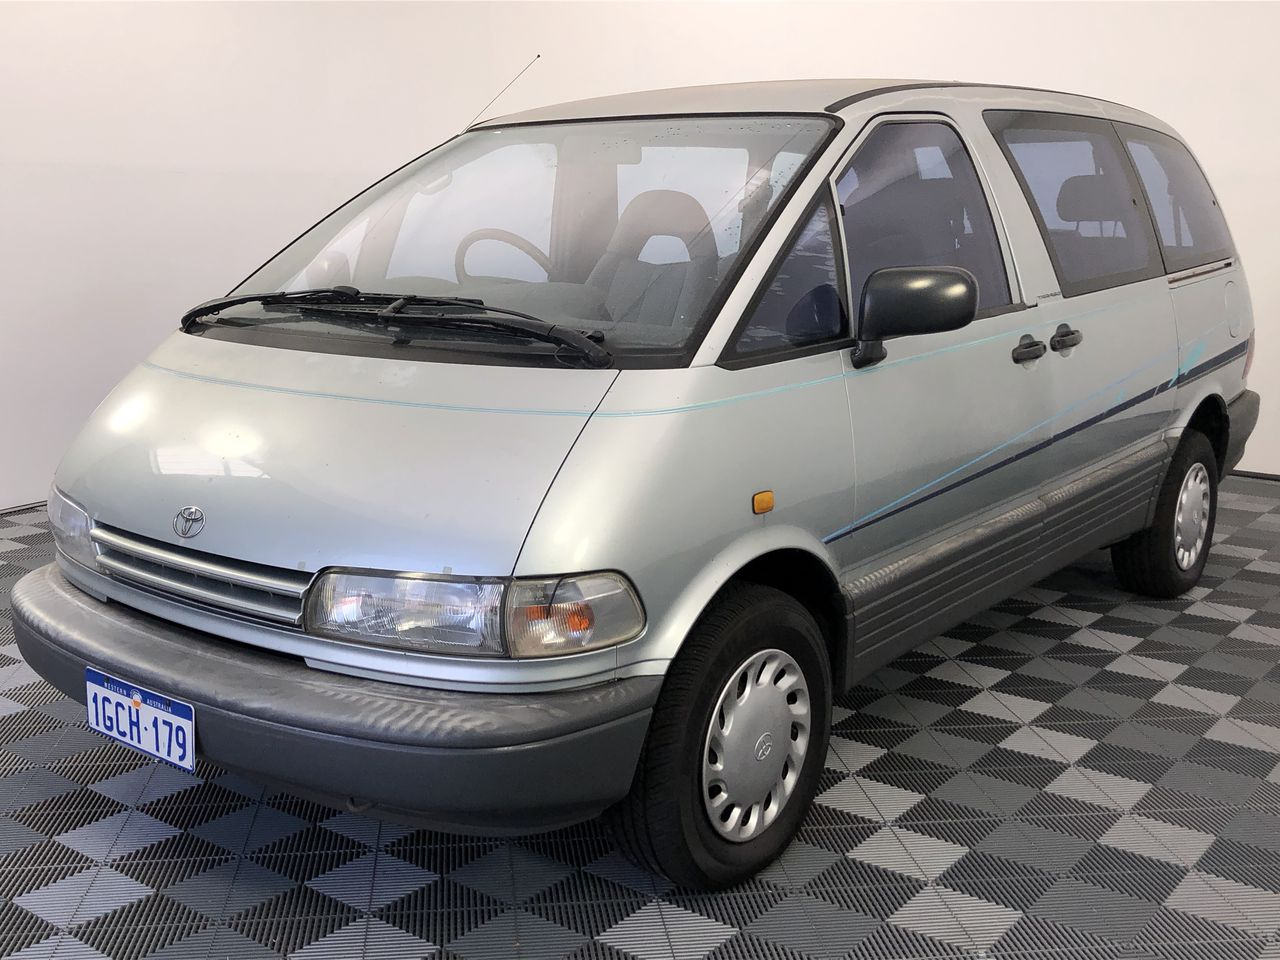 1993 Toyota Tarago GLI TCR10 Manual 7 Seats People Mover